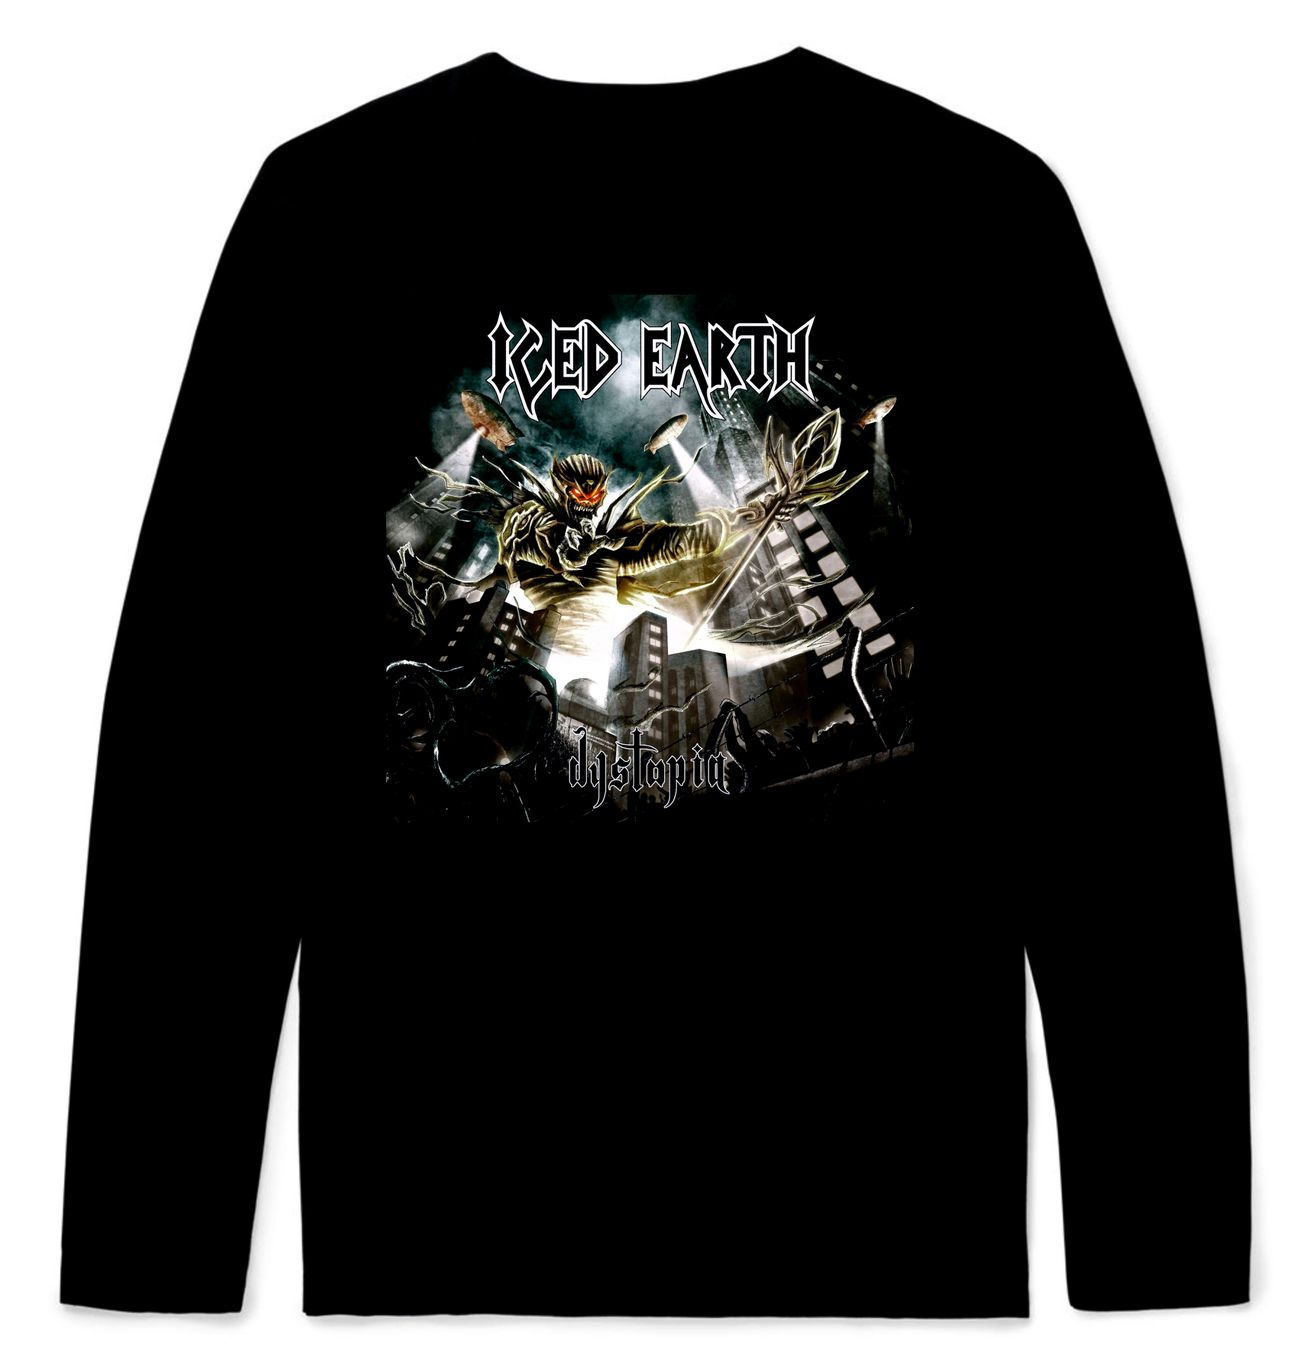 Iced Earth Dystopia Longsleeve T-Shirt – Metal   Rock T-shirts and ... a3c16c826f